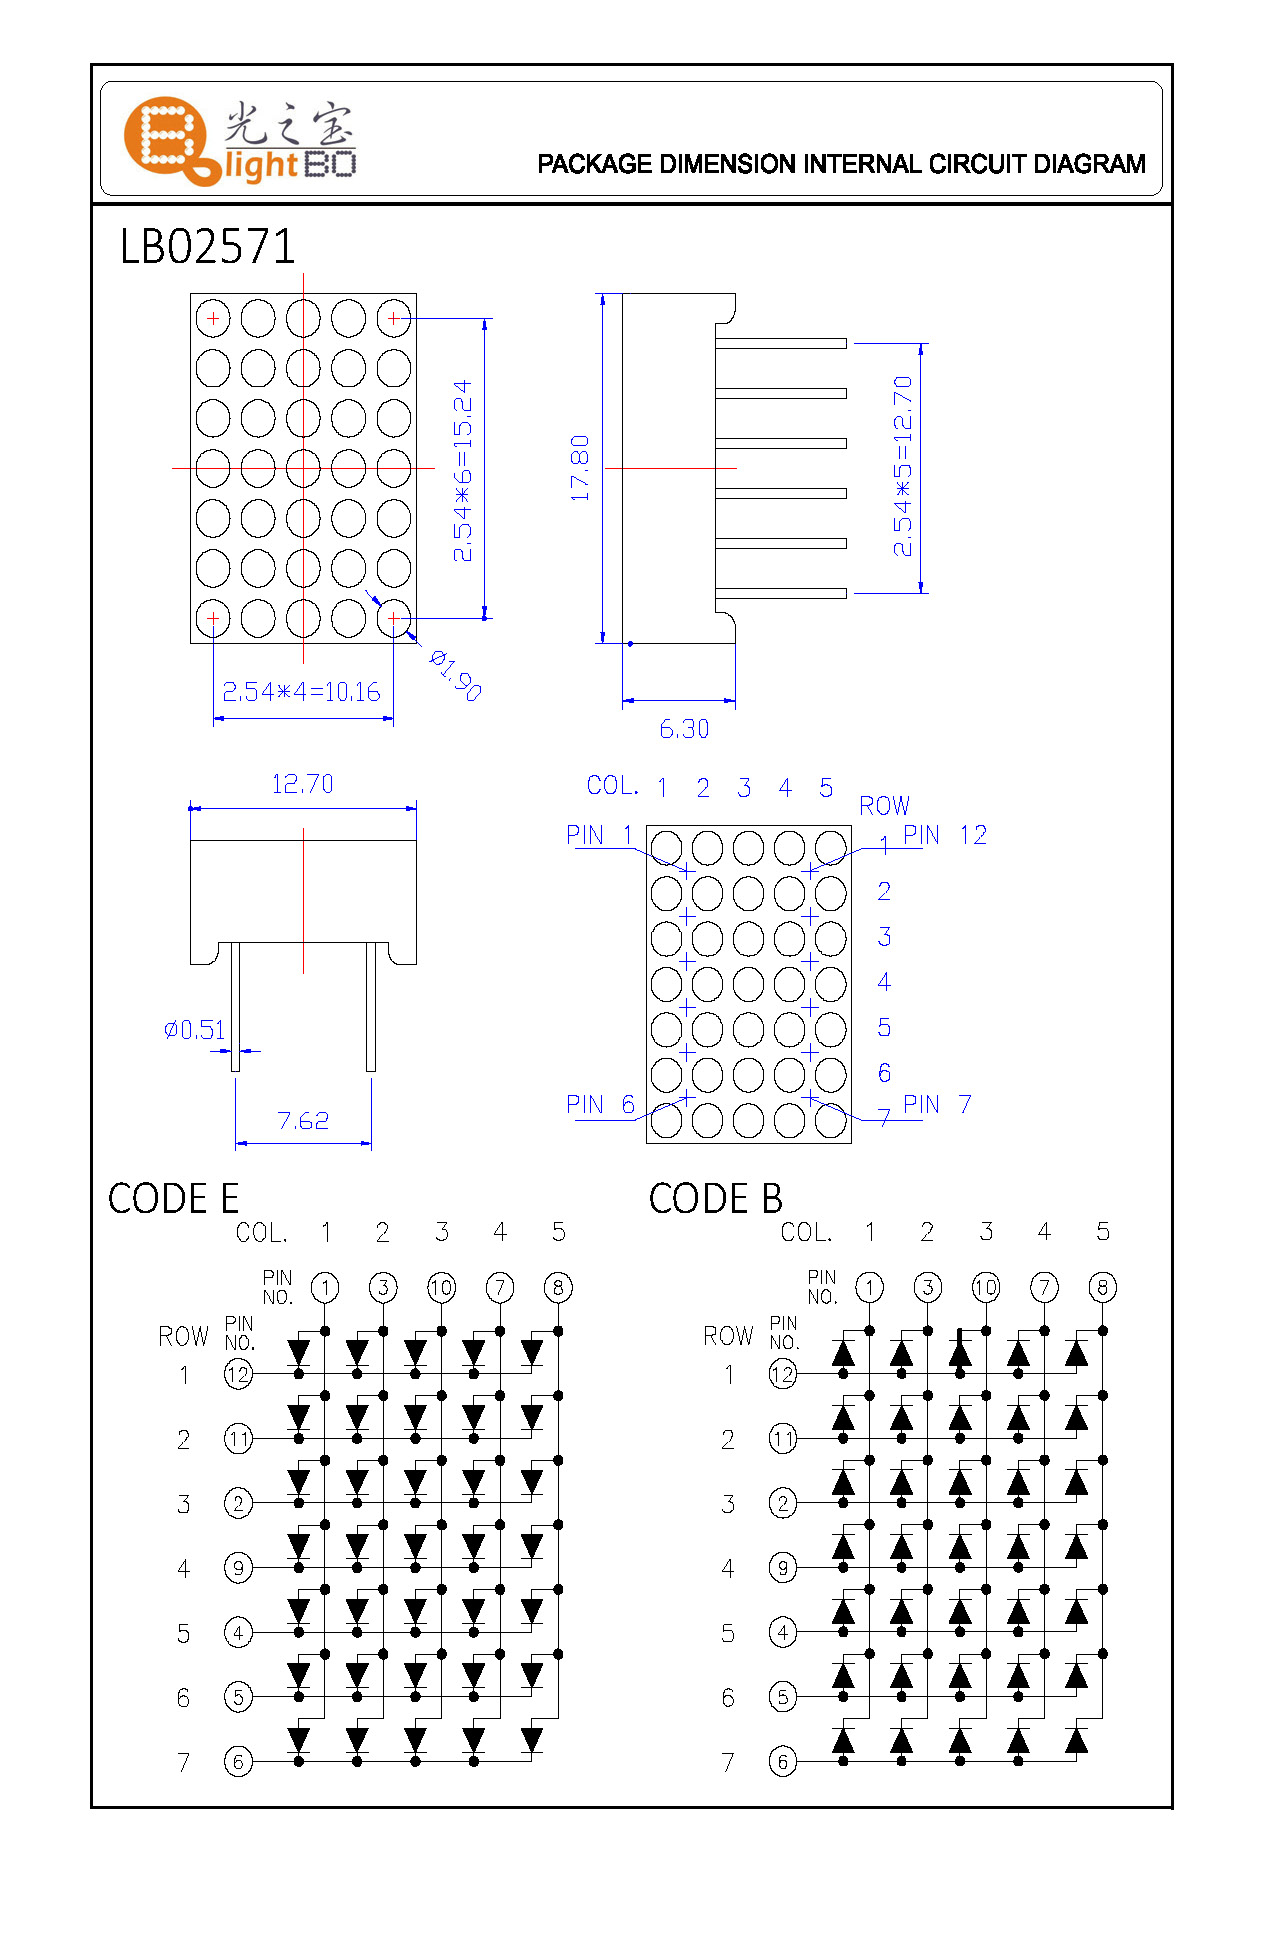 0 7 inch white 5 x 7 dot matrix led display  0 7 u0026quot  dot matrix  0 7 inch 5 x 7 dot matrix from